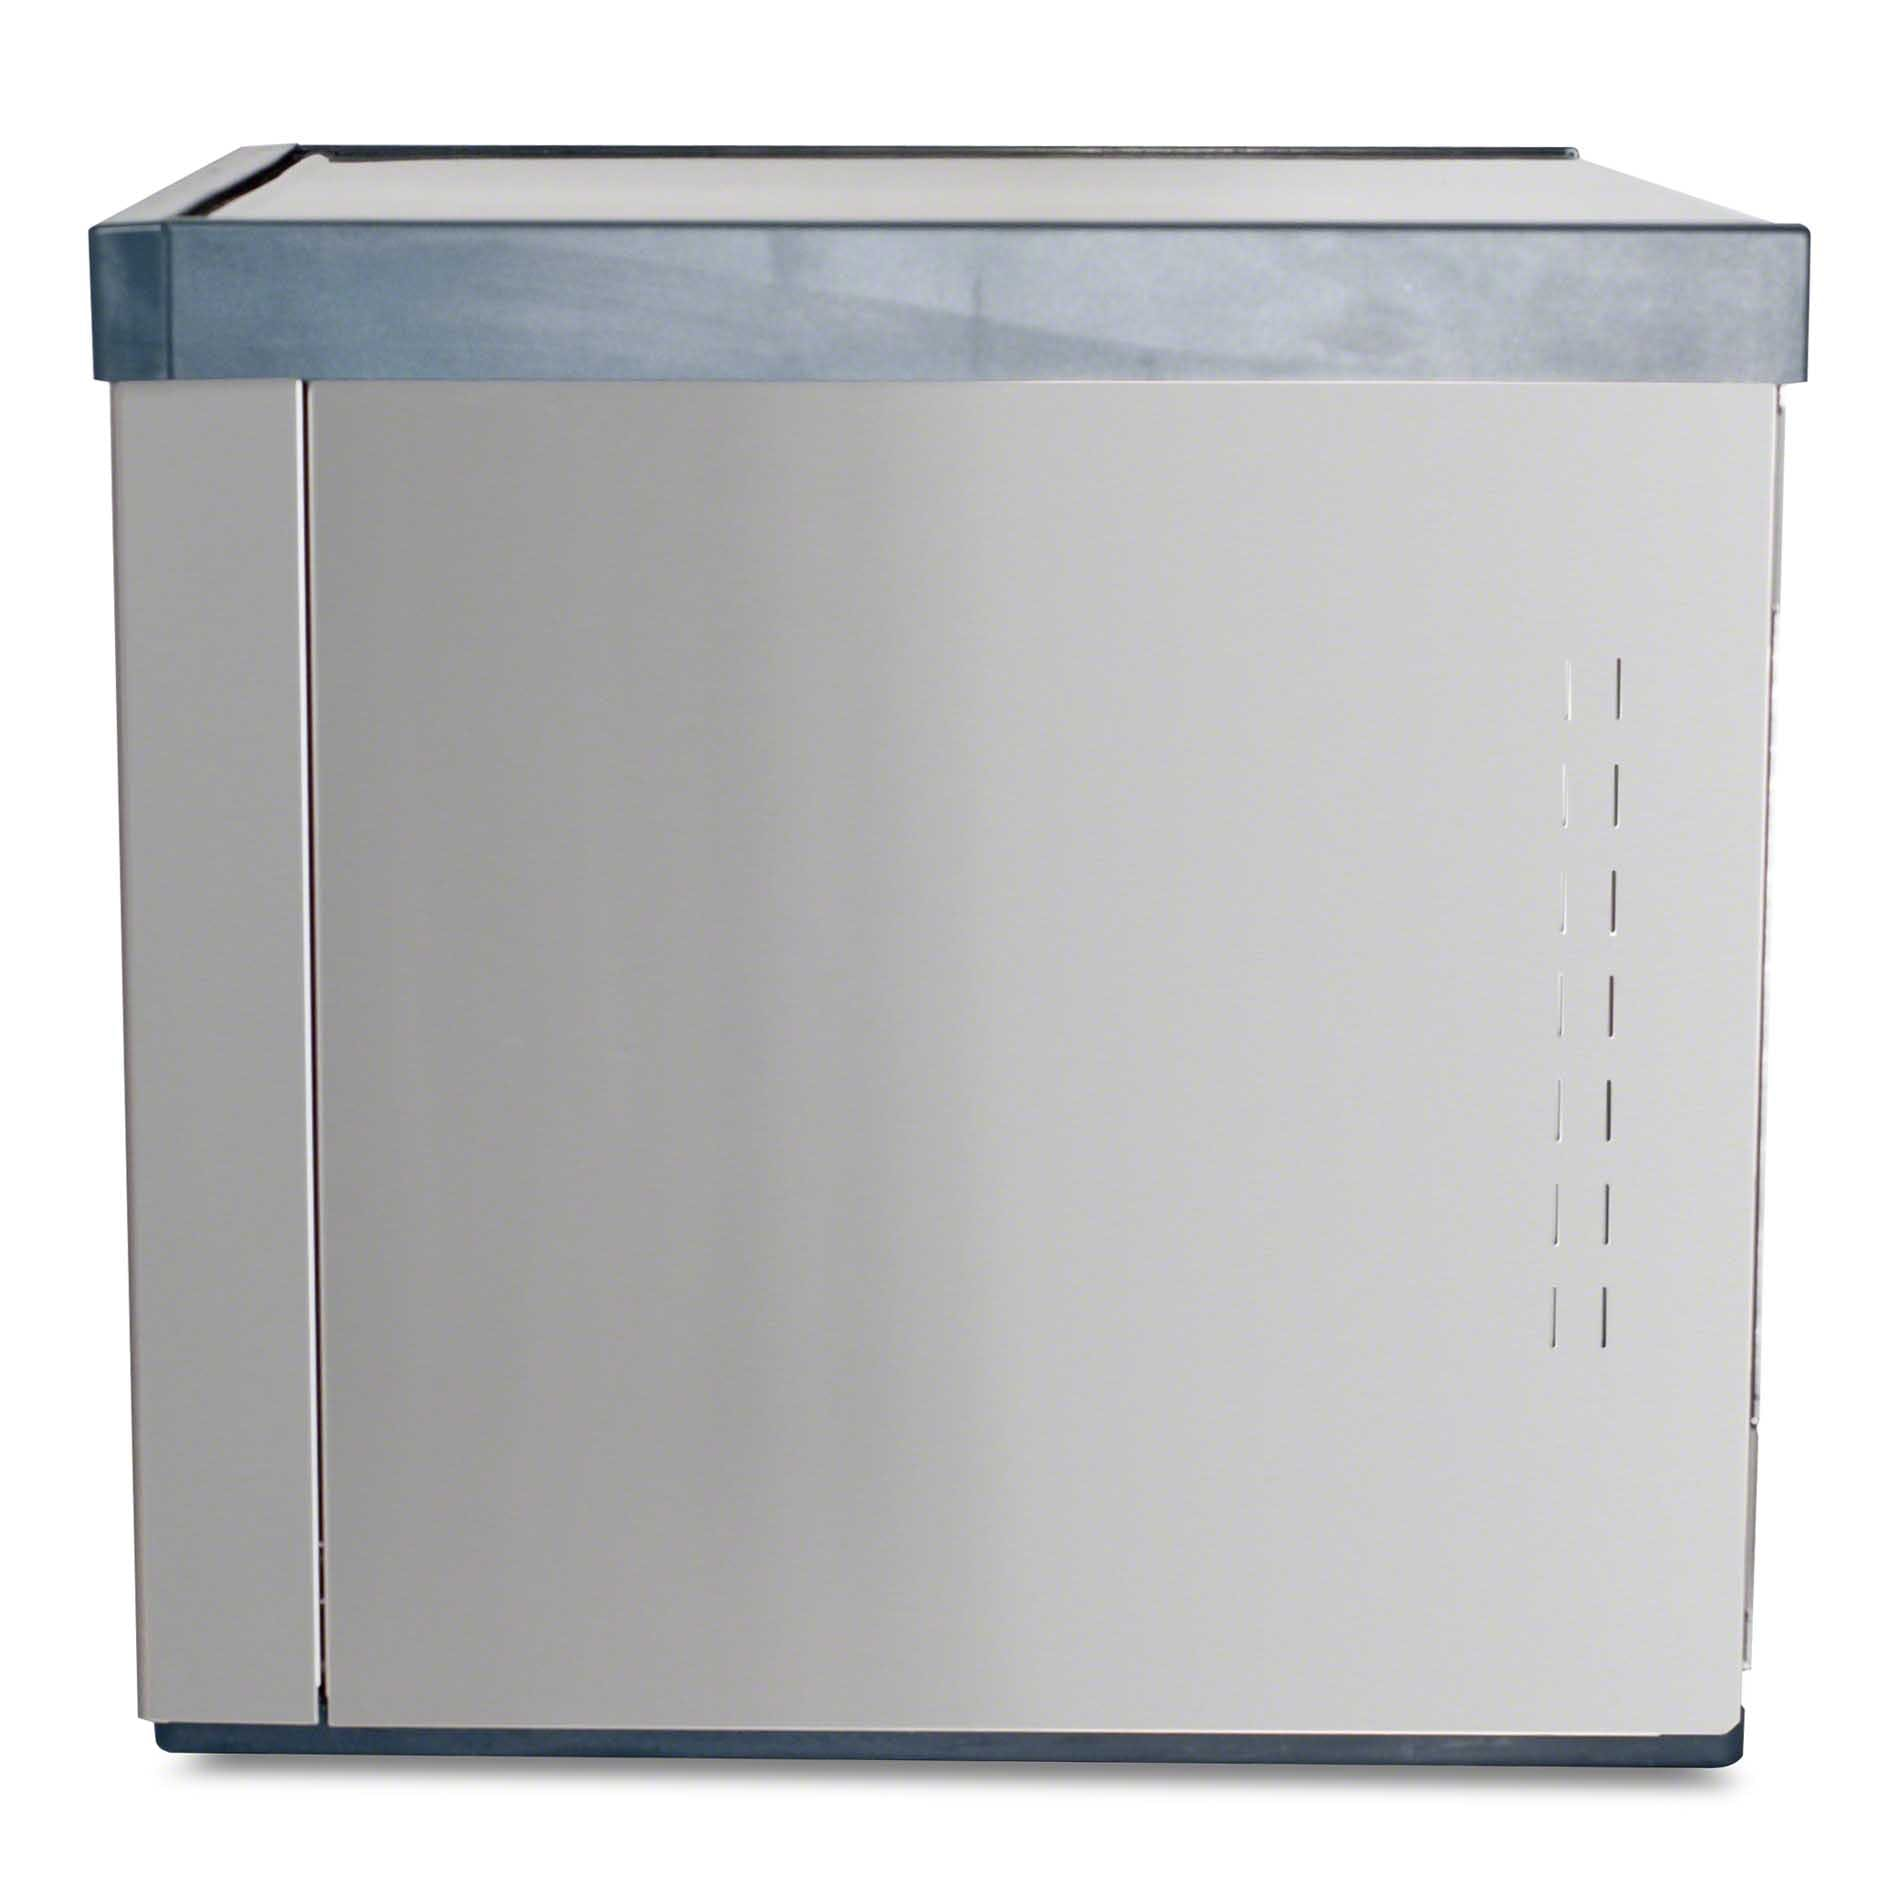 Scotsman - C0630MR-32A 684 lb Full Size Cube Ice Machine - Prodigy Series Ice machine sold by Food Service Warehouse